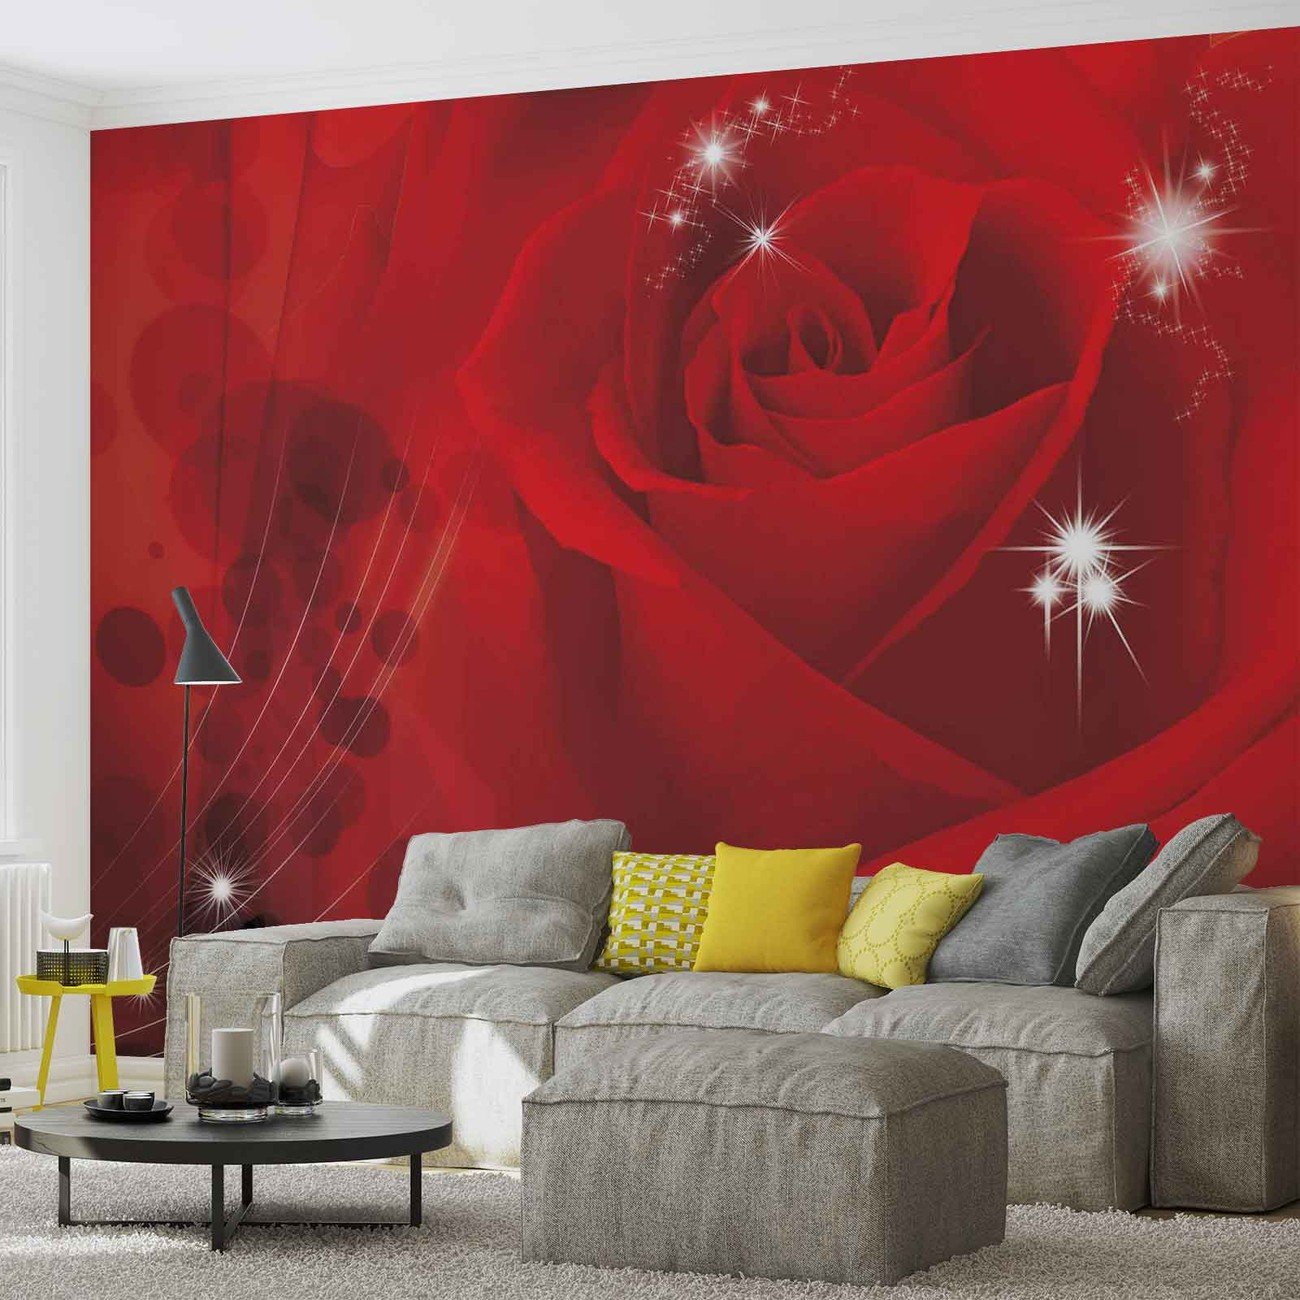 fleur rose rouge poster mural papier peint acheter le sur. Black Bedroom Furniture Sets. Home Design Ideas